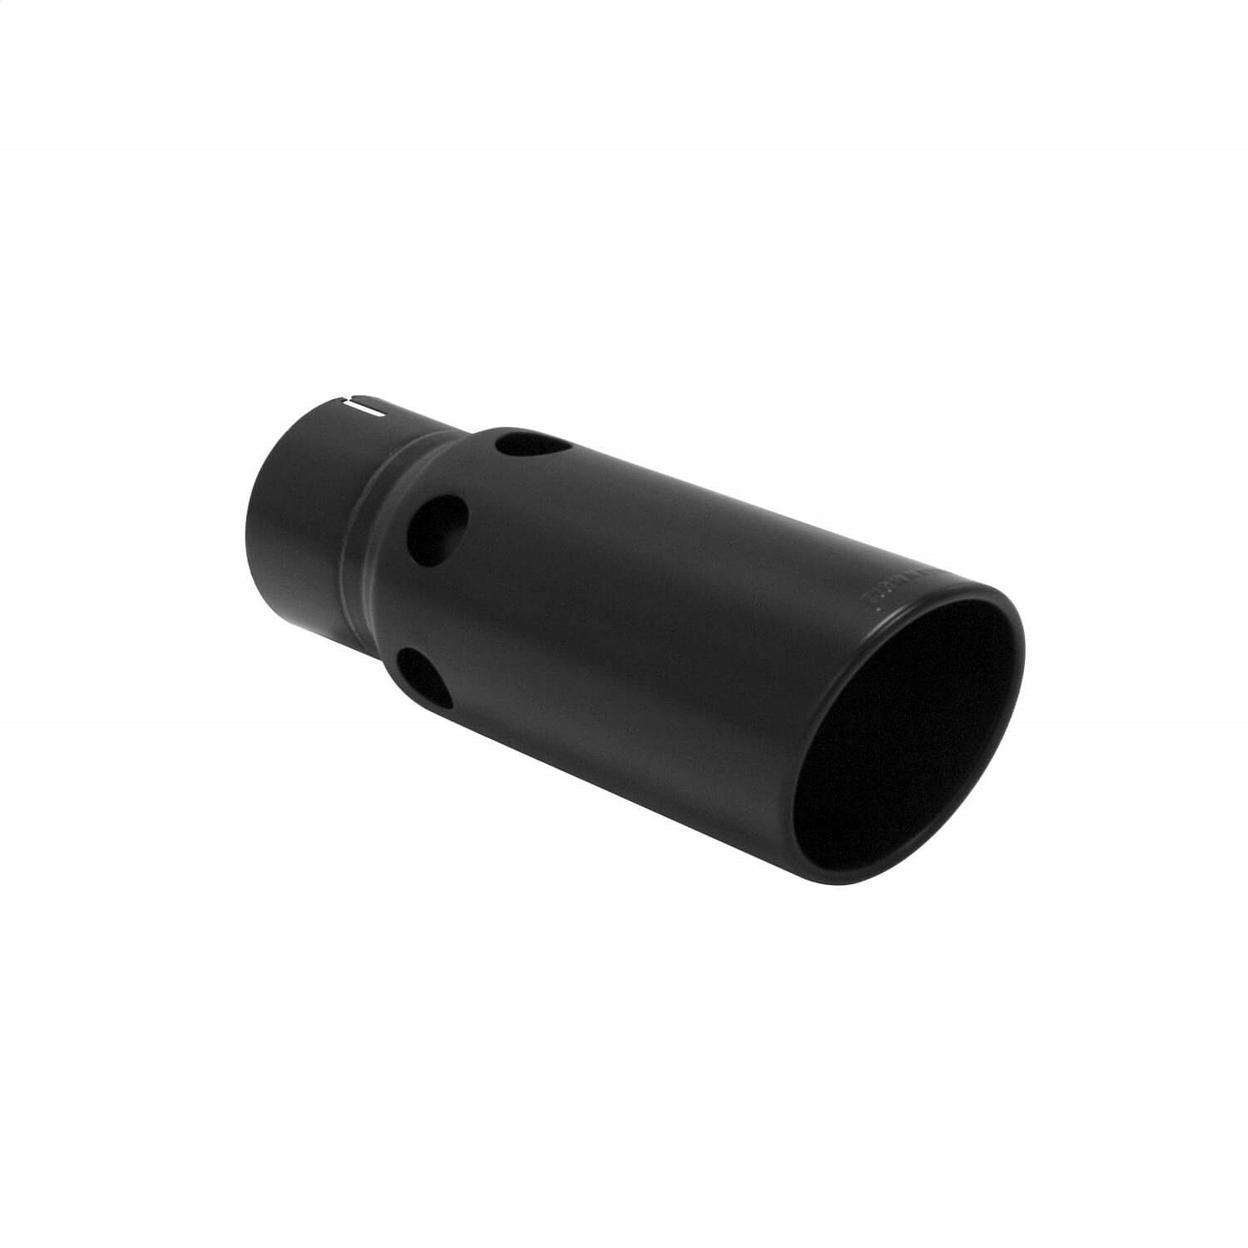 Exhaust Tip - 5.00 in. Rolled Angle Black Finish Fits 4 in. Tubing